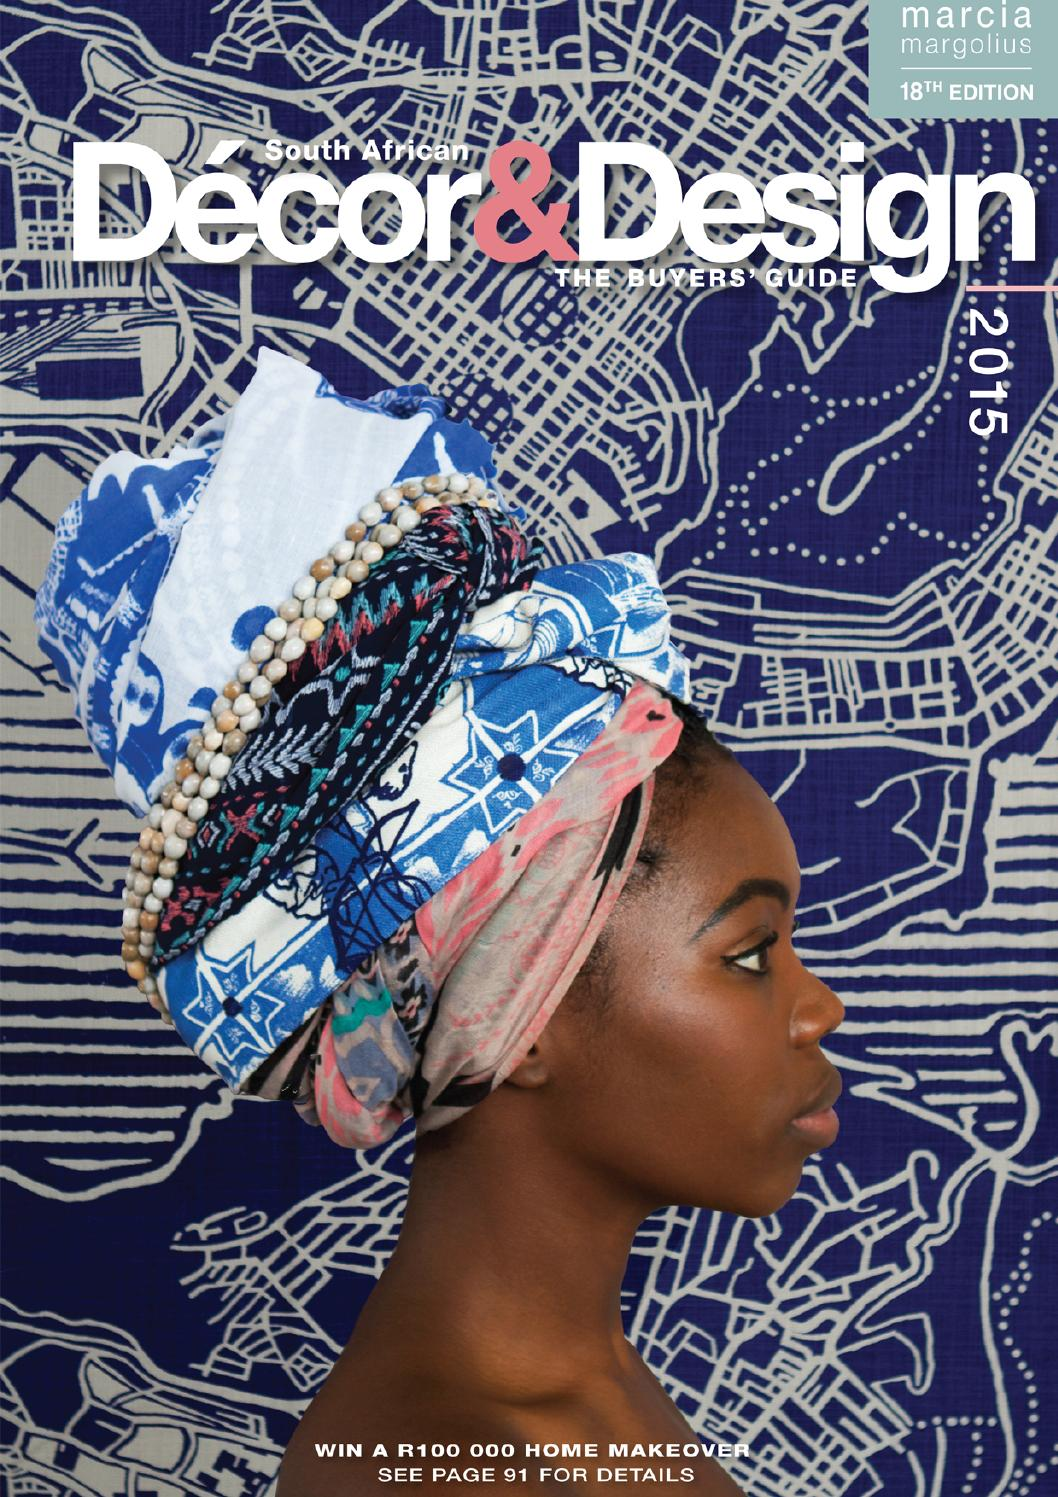 18th edition of the buyers guide by sa decor amp design   issuu